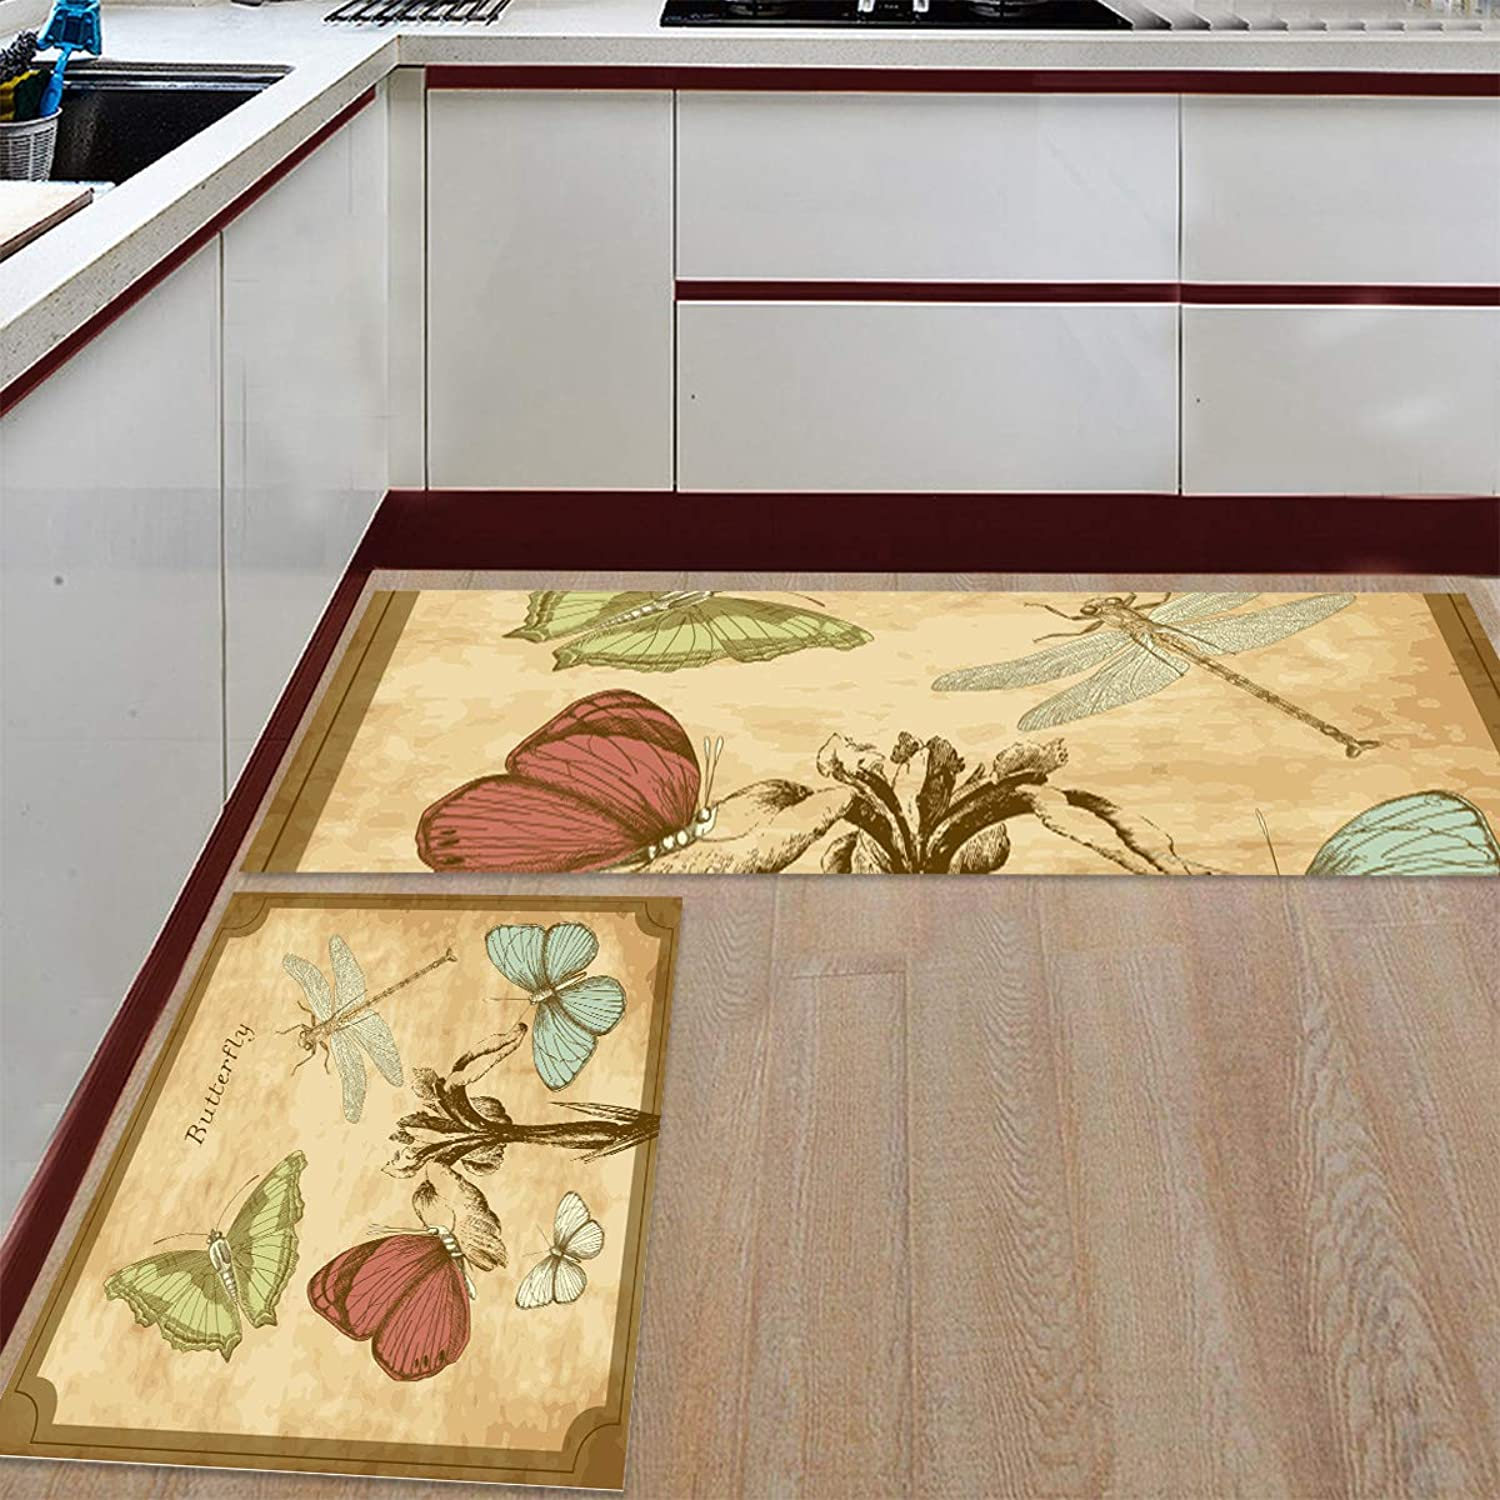 Kitchen Rugs Sets 2 Piece Floor Mats Butterfly Dragonfly Postcard Pamphlet Doormat Non-Slip Rubber Backing Area Rugs Washable Carpet Inside Door Mat Pad Sets (23.6  x 35.4 +23.6  x 70.9 )